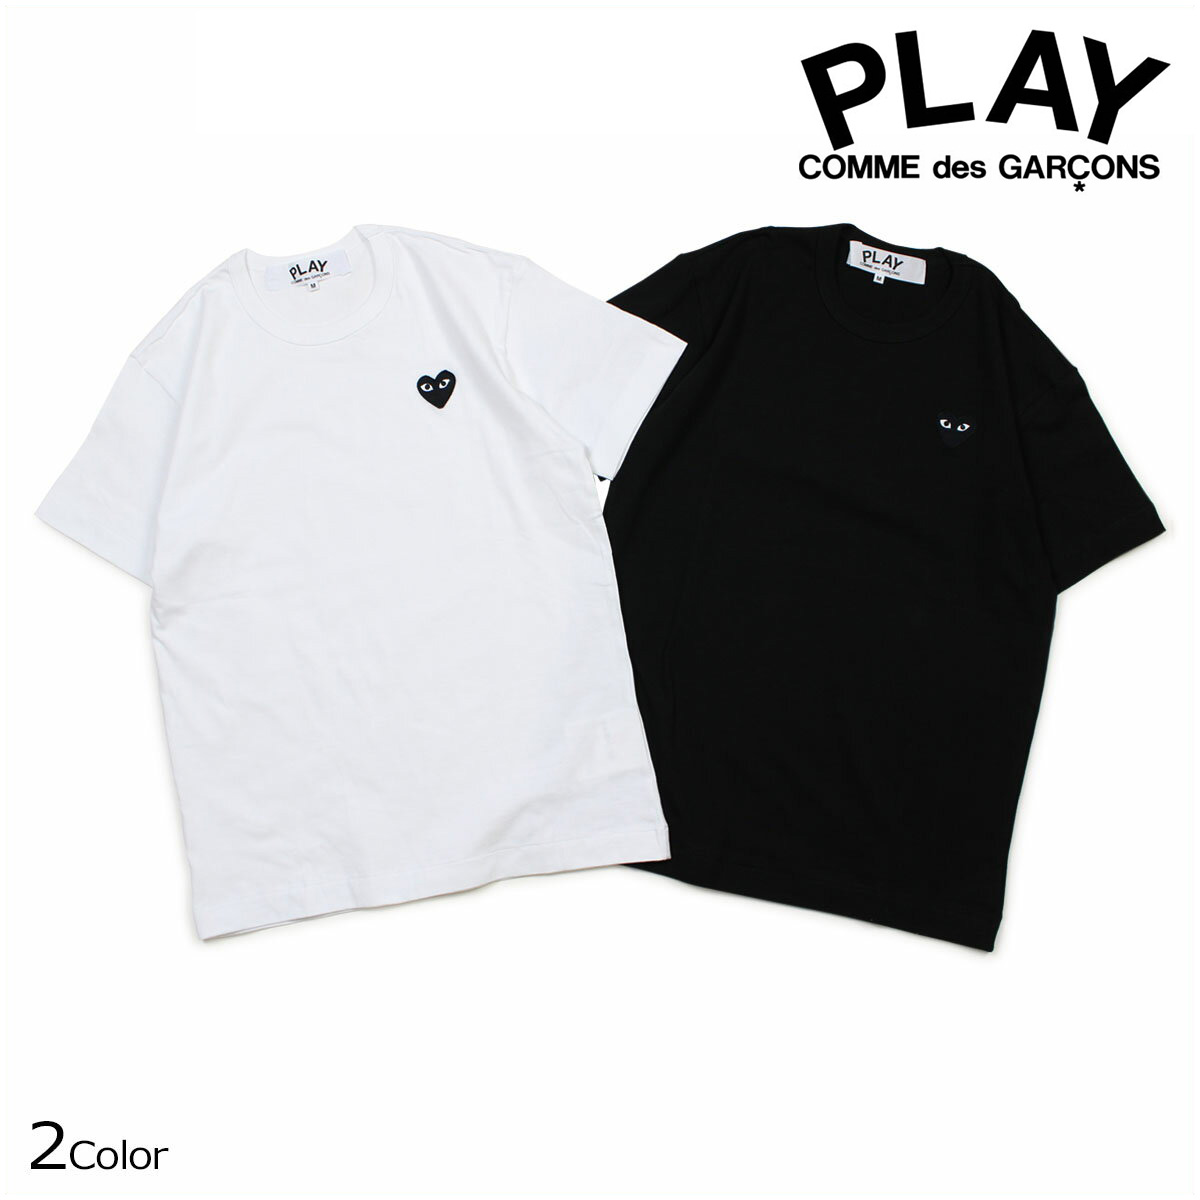 0a1745fb I always must keep an eye on コムデギャルソン (COMME des GARCONS) which continues  producing the new world more and more!